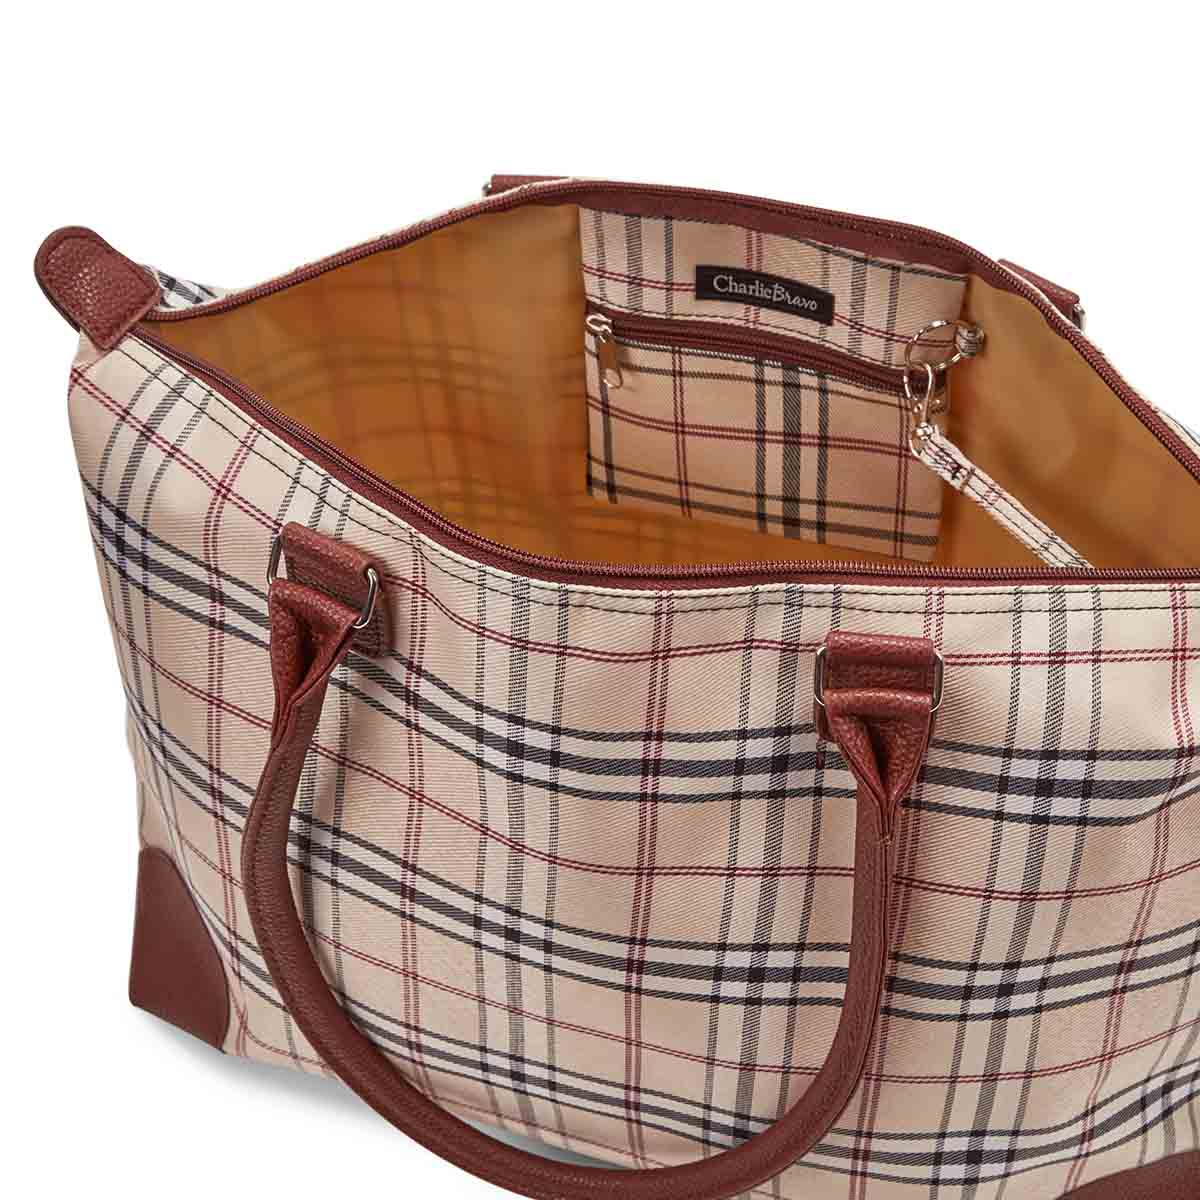 Lds sand plaid large tote hand bag